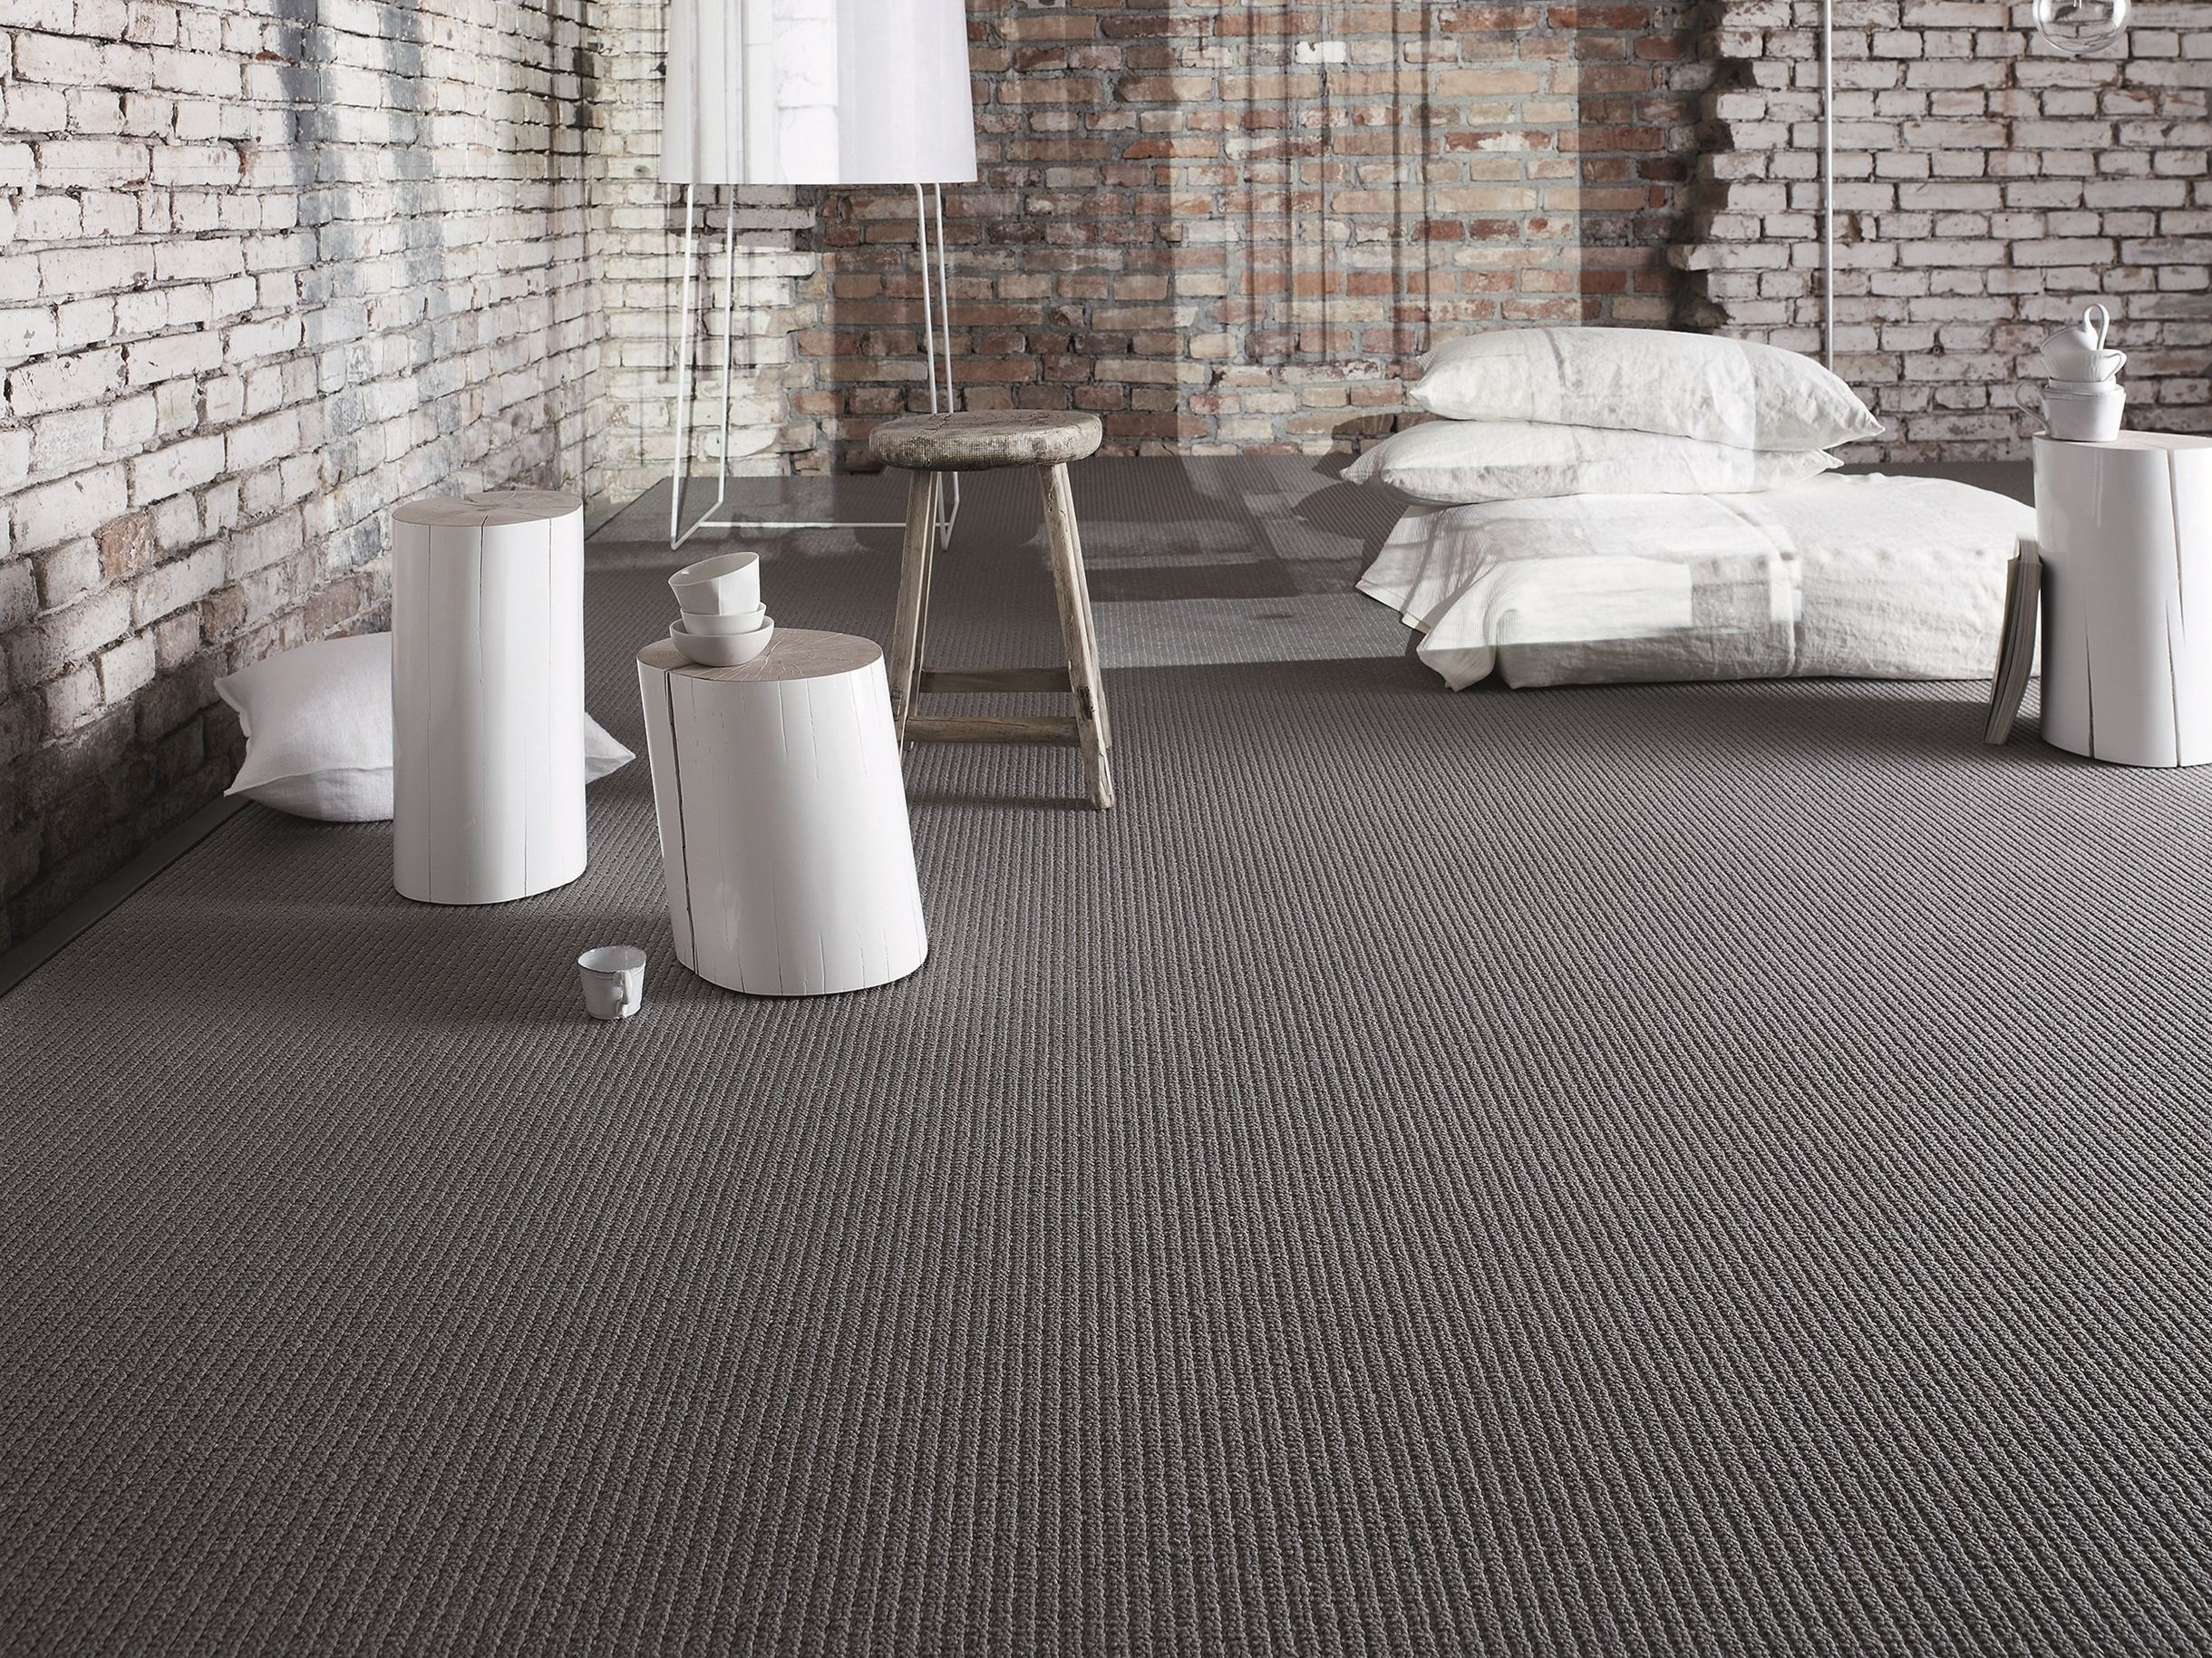 Moquette a tinta unita ritz 900 by object carpet gmbh for Design moquitte